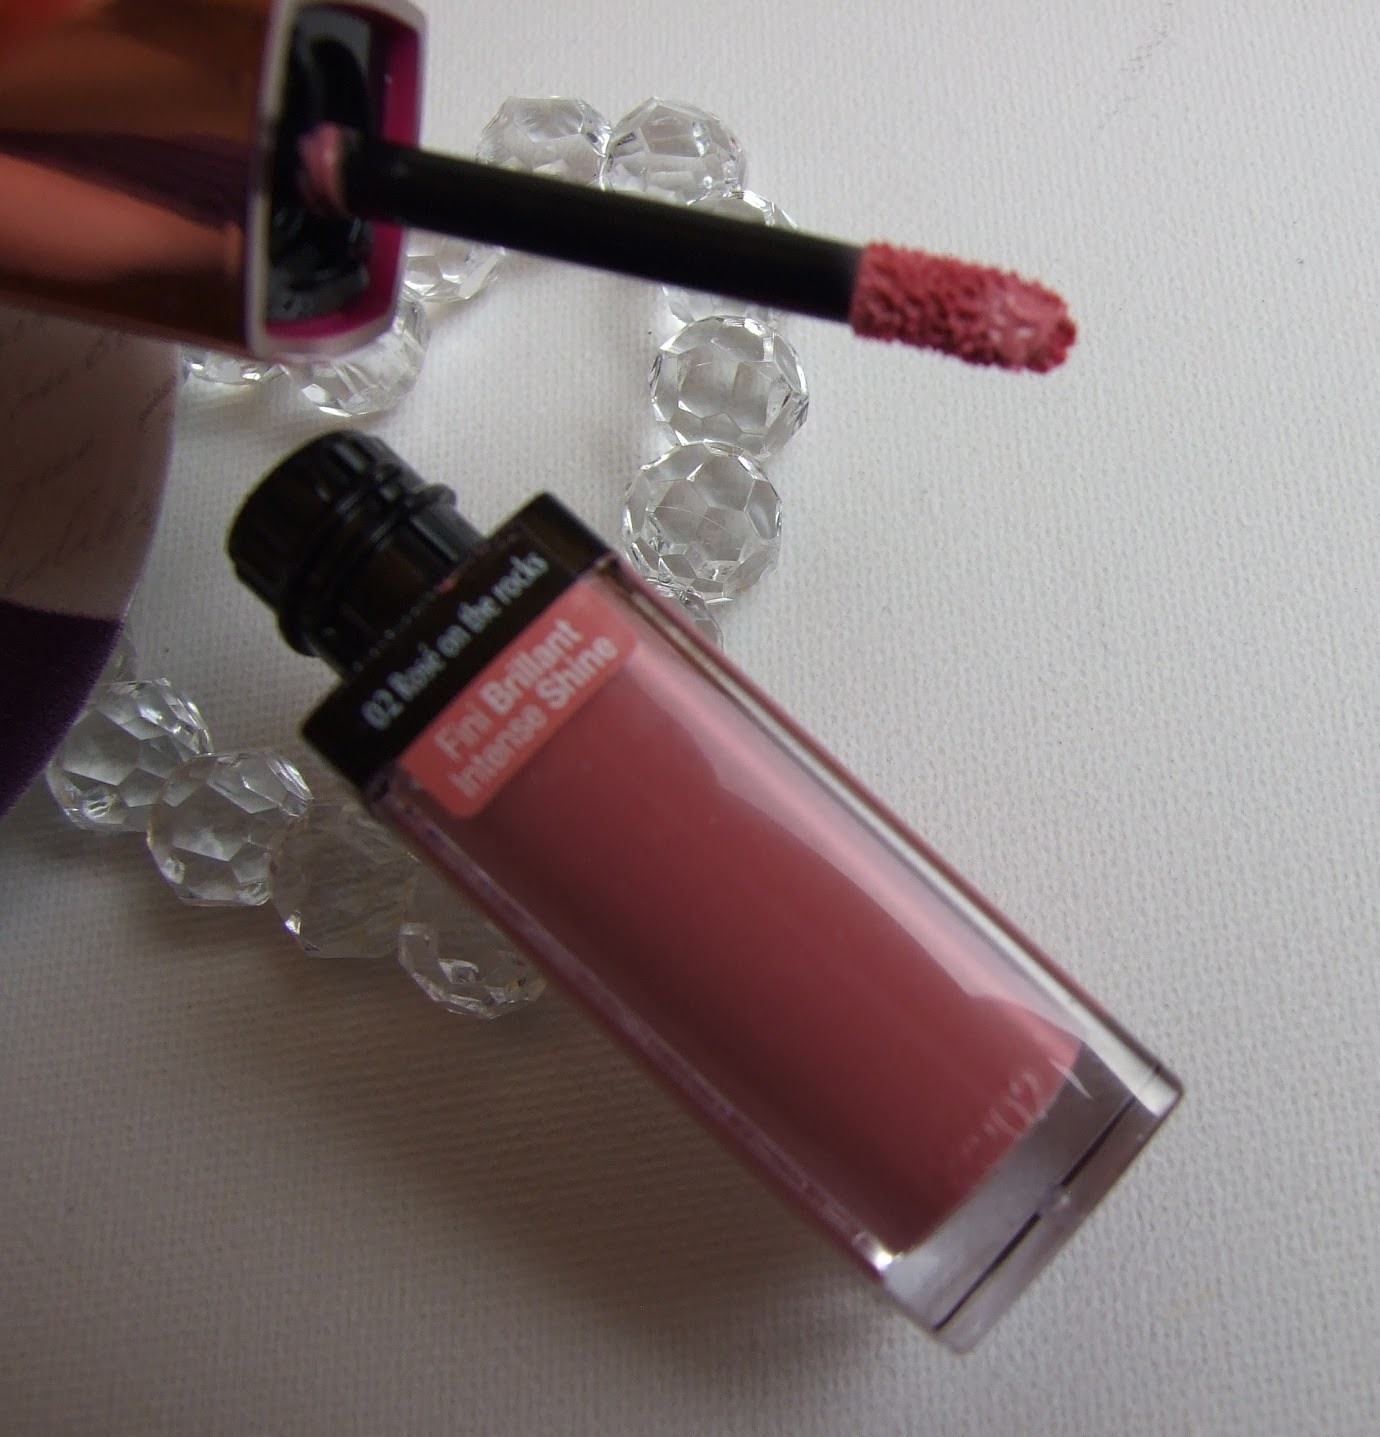 bourjois aqua laque liquuid lipstick beauty blog review swatches rose on the rocks